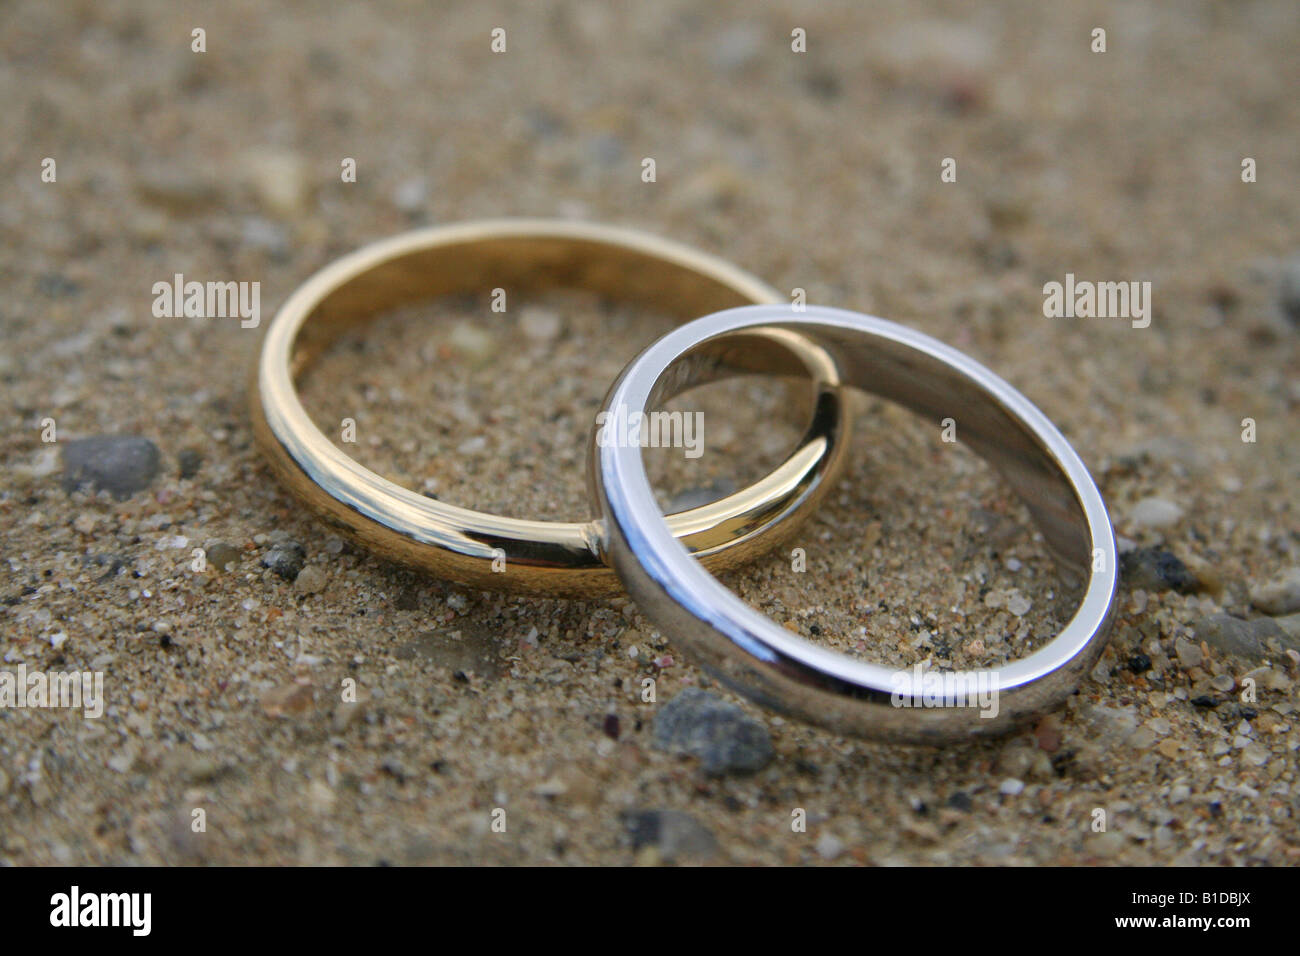 Closeup shot of two wedding rings arranged on a sandy beach Stock